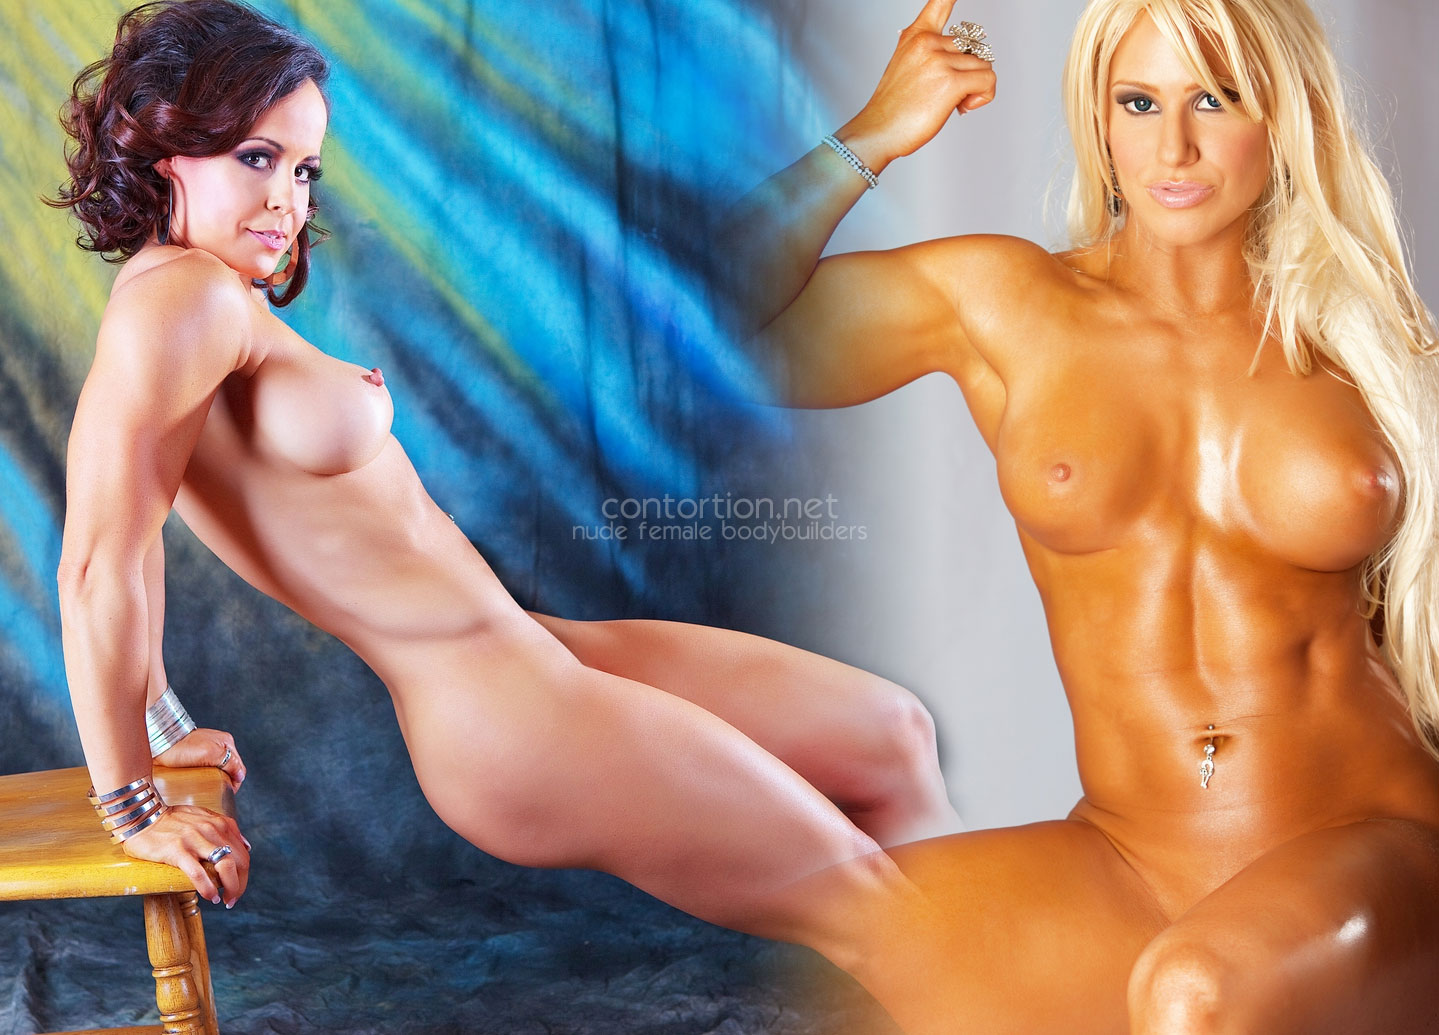 Body Builders Nude Photos nude female bodybuilders from all over the world